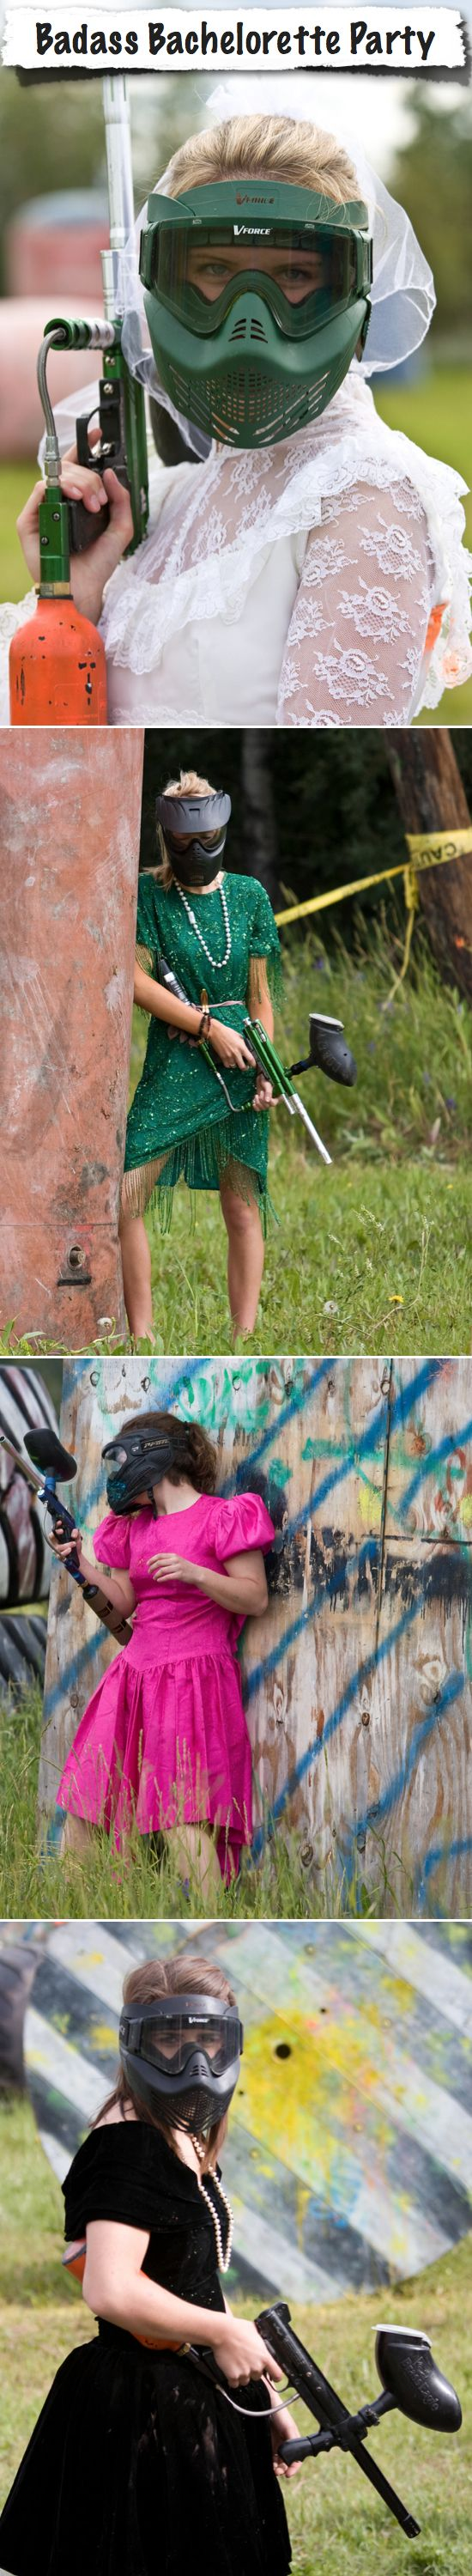 Horrible thrift store dresses & paintball for a bachelorette party!.....Freakin' awesome!